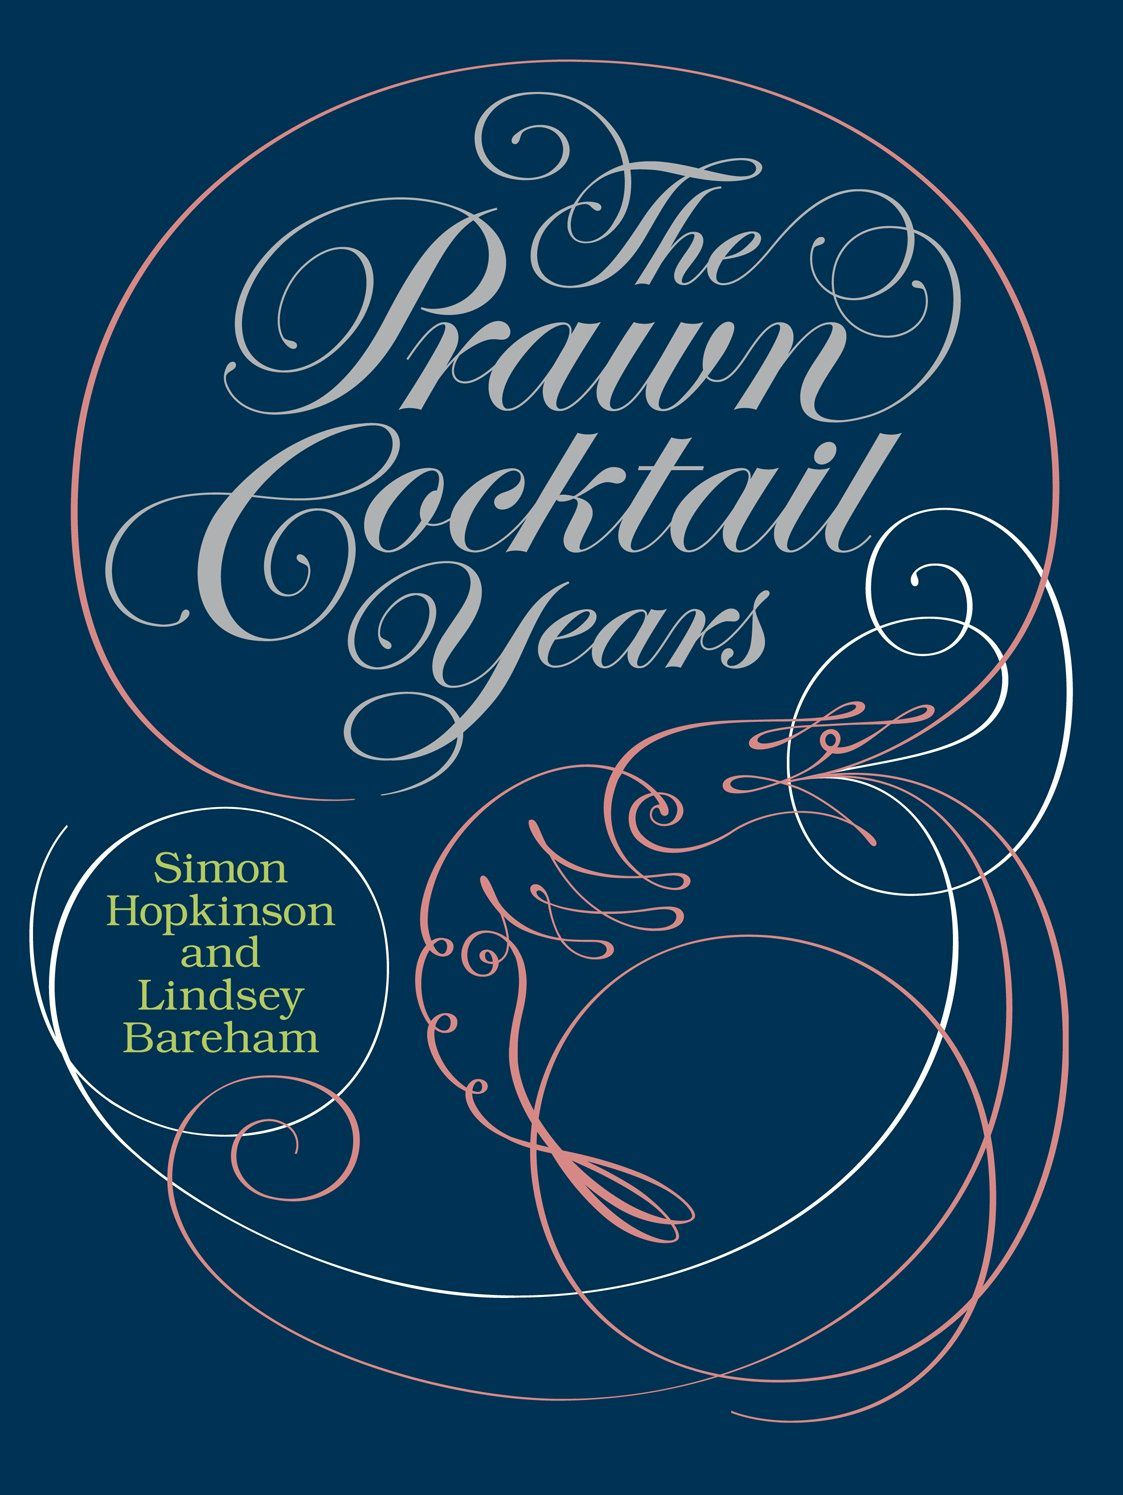 The Prawn Cocktail Years by Simon Hopkinson, one of the best cookbooks chosen by Eater writers